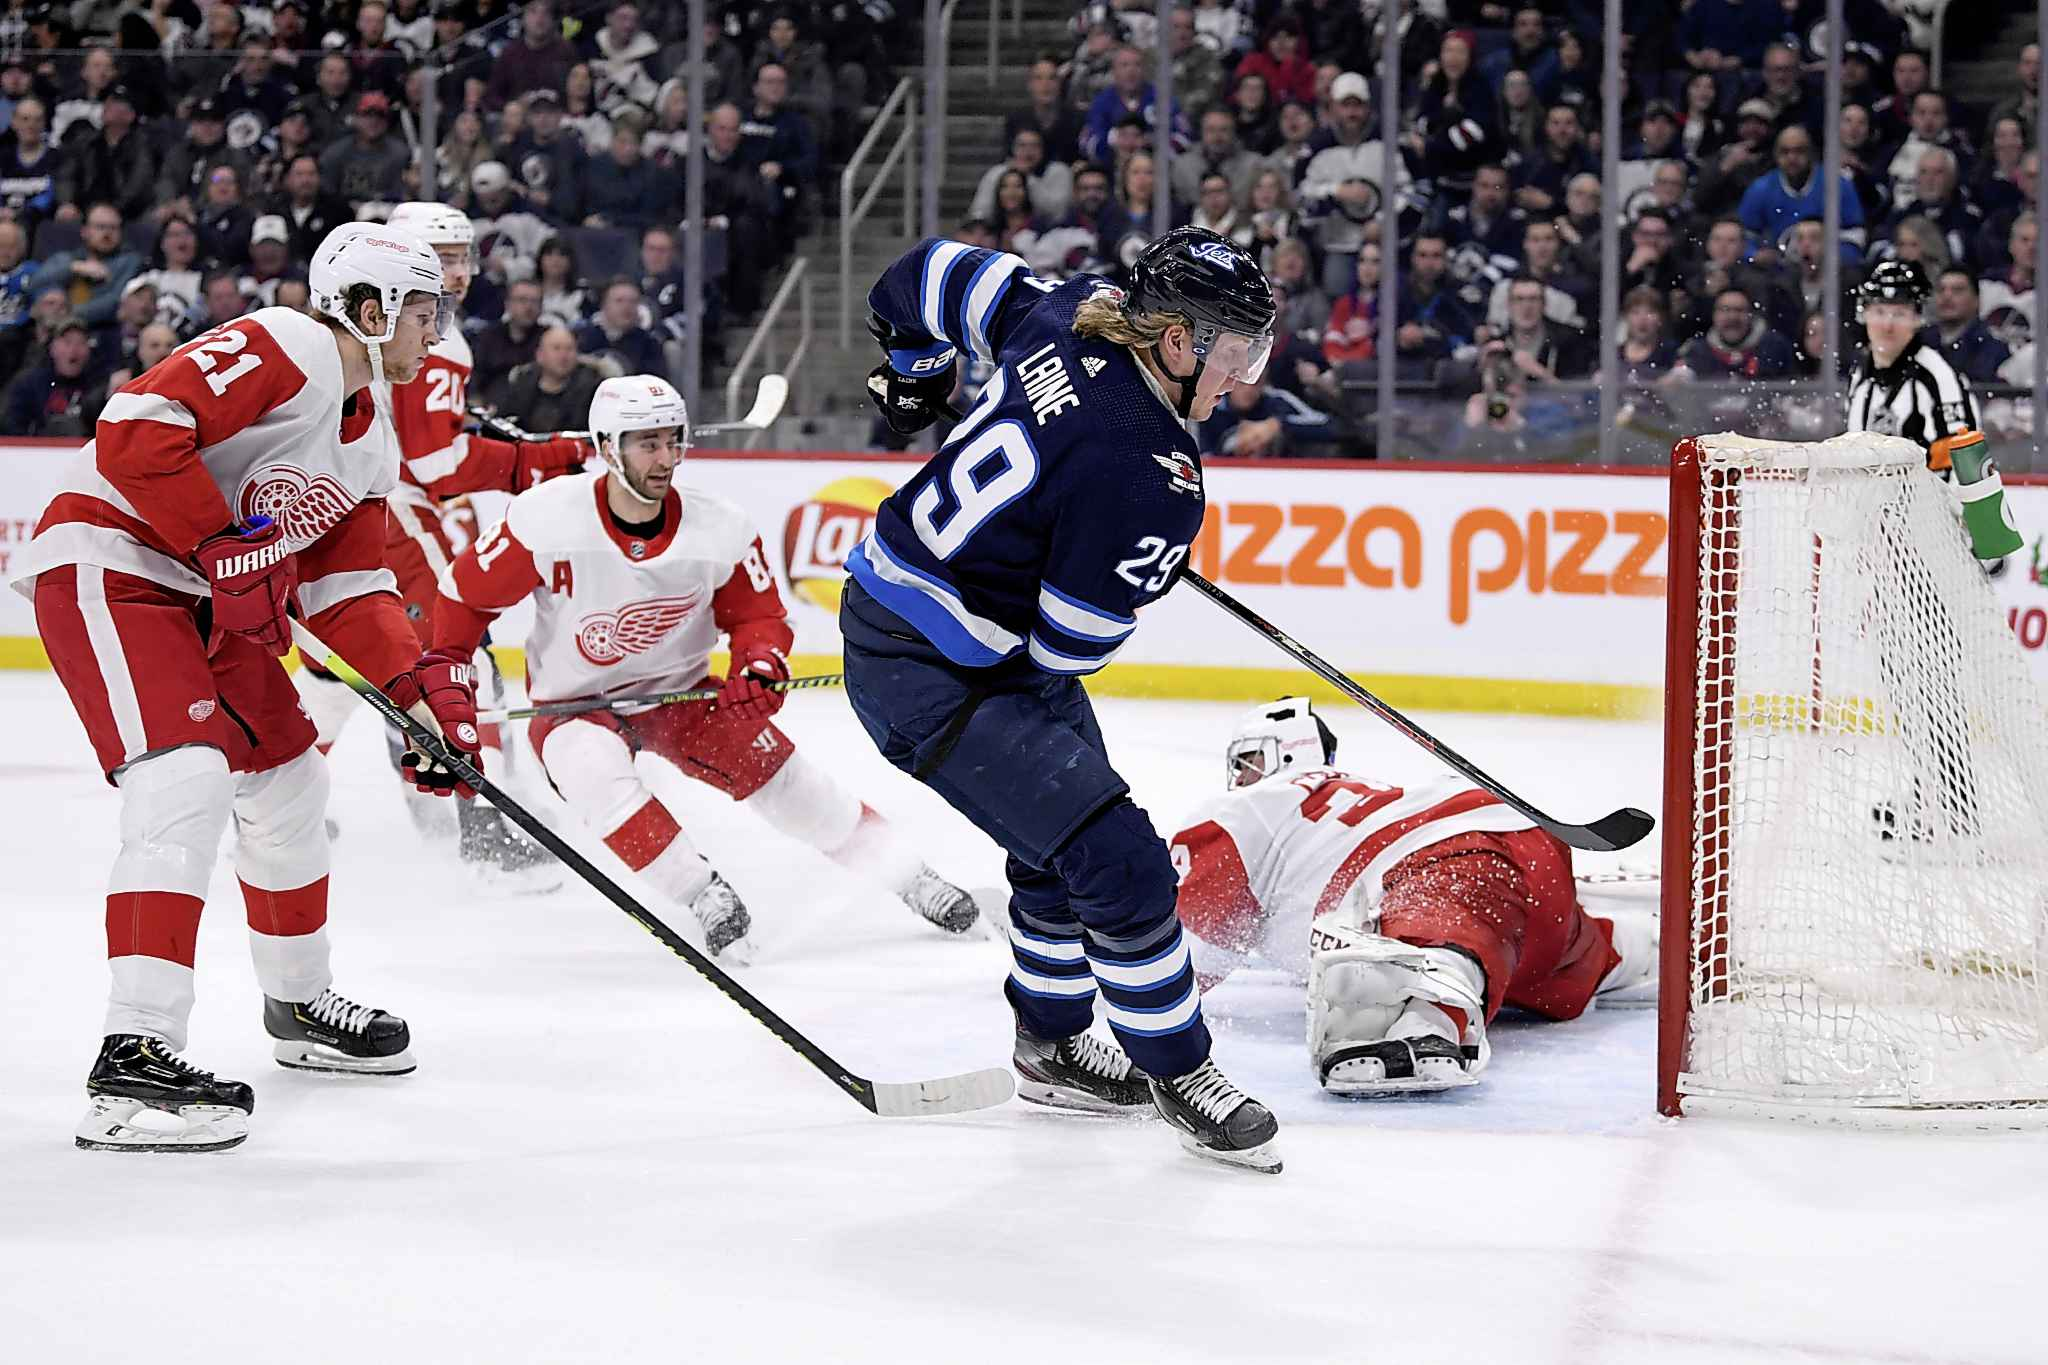 Winnipeg Jets' Patrik Laine scores on a deke around Detroit Red Wings goaltender Eric Comrie during the second period.